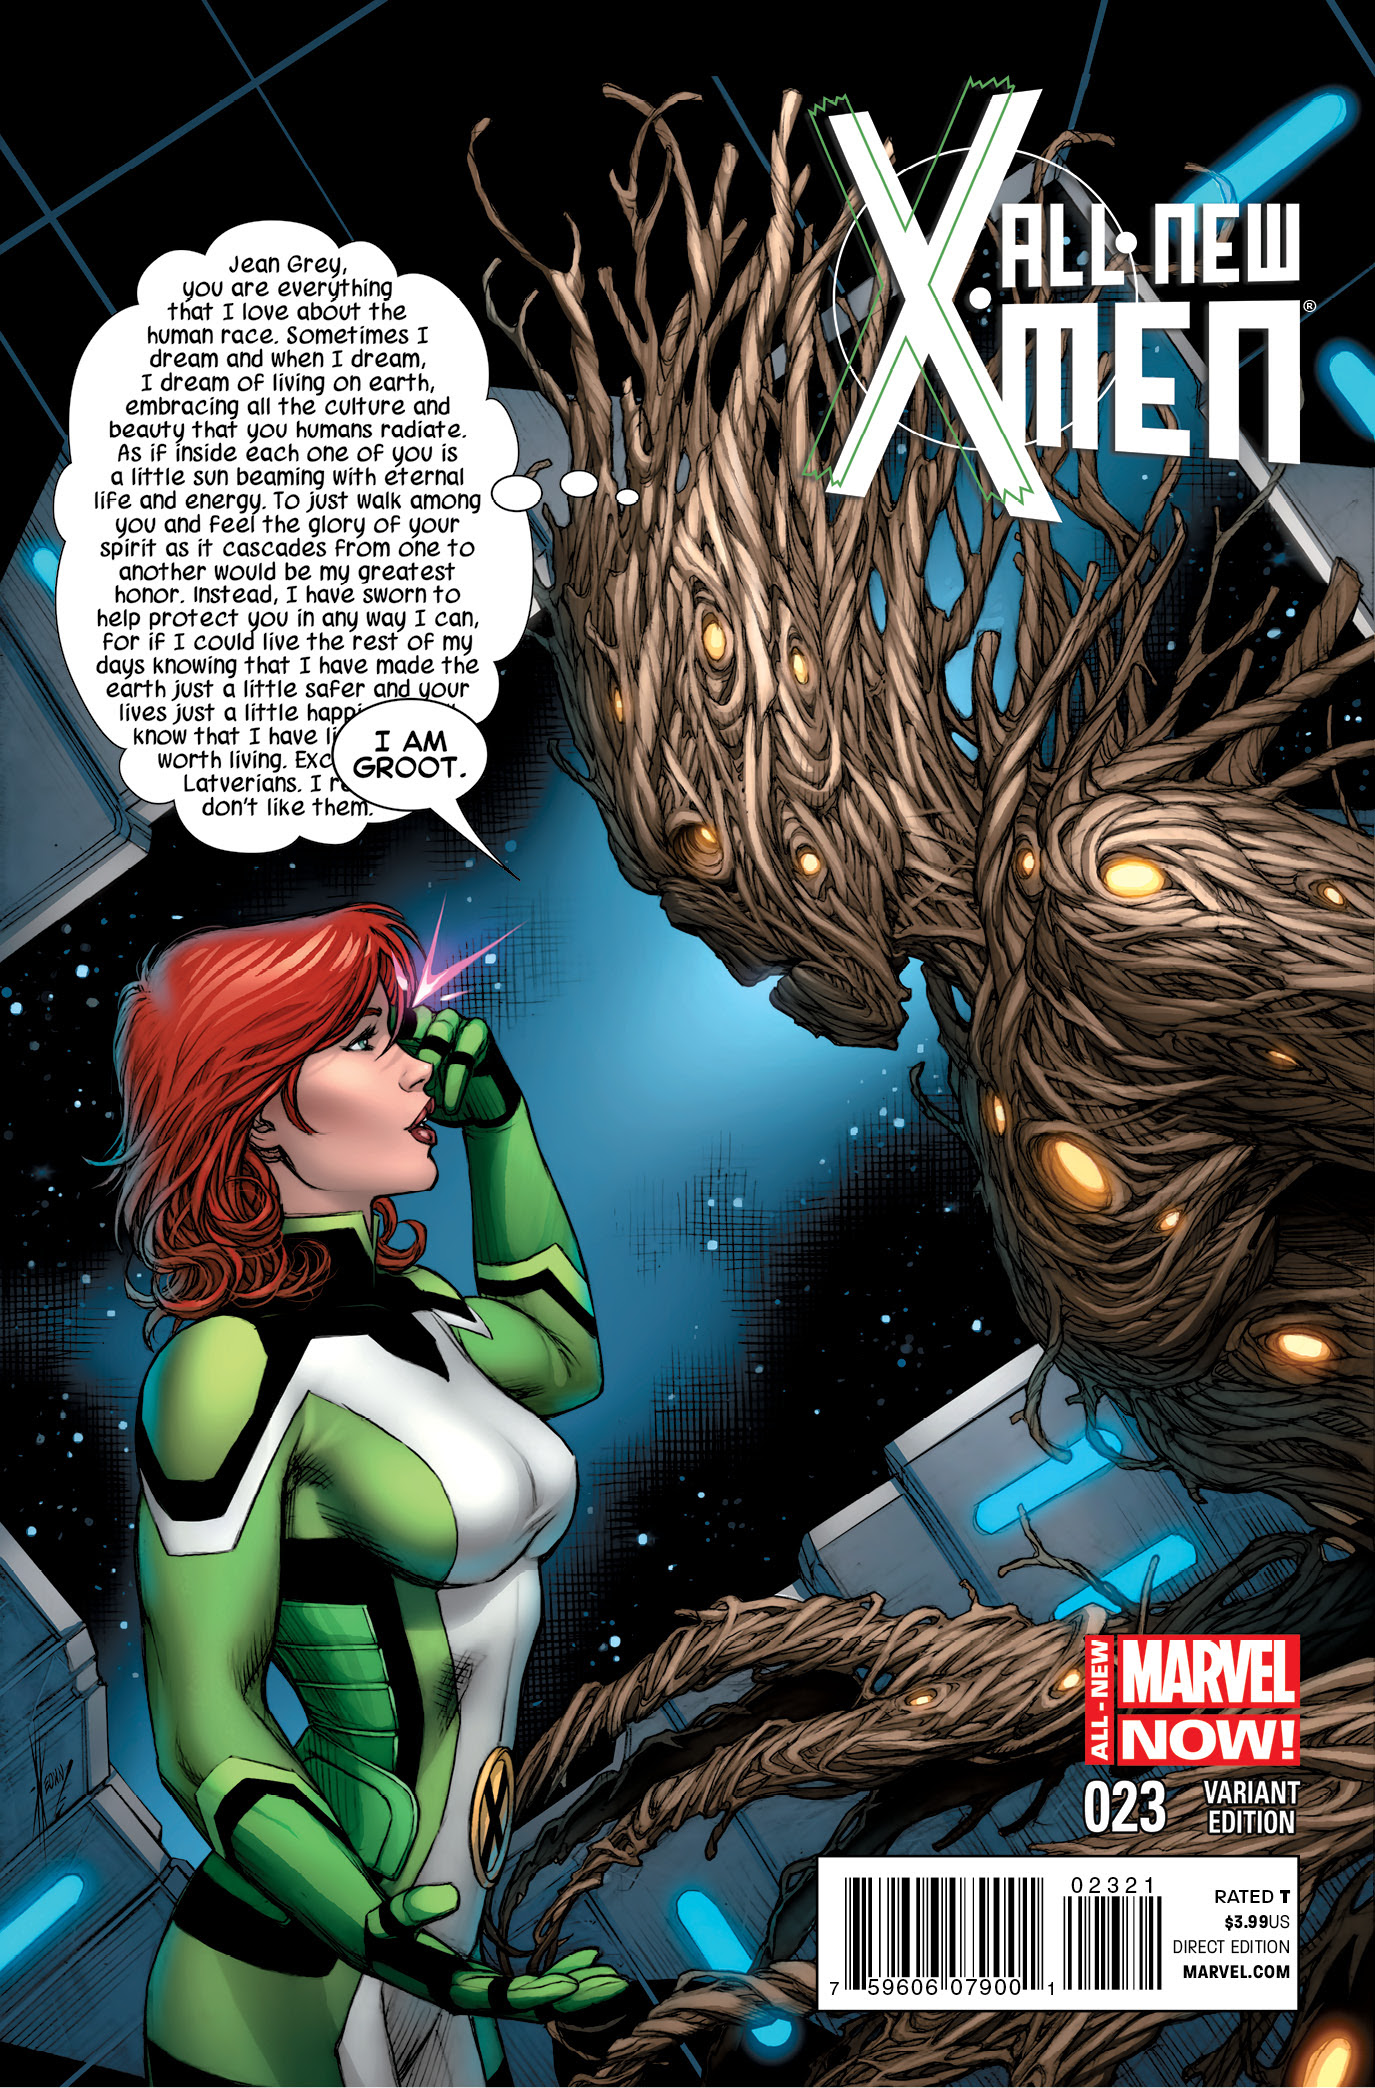 http://majorspoilers.com/wp-content/uploads/2014/01/All_New_X-Men_23_Keown_Variant.jpg